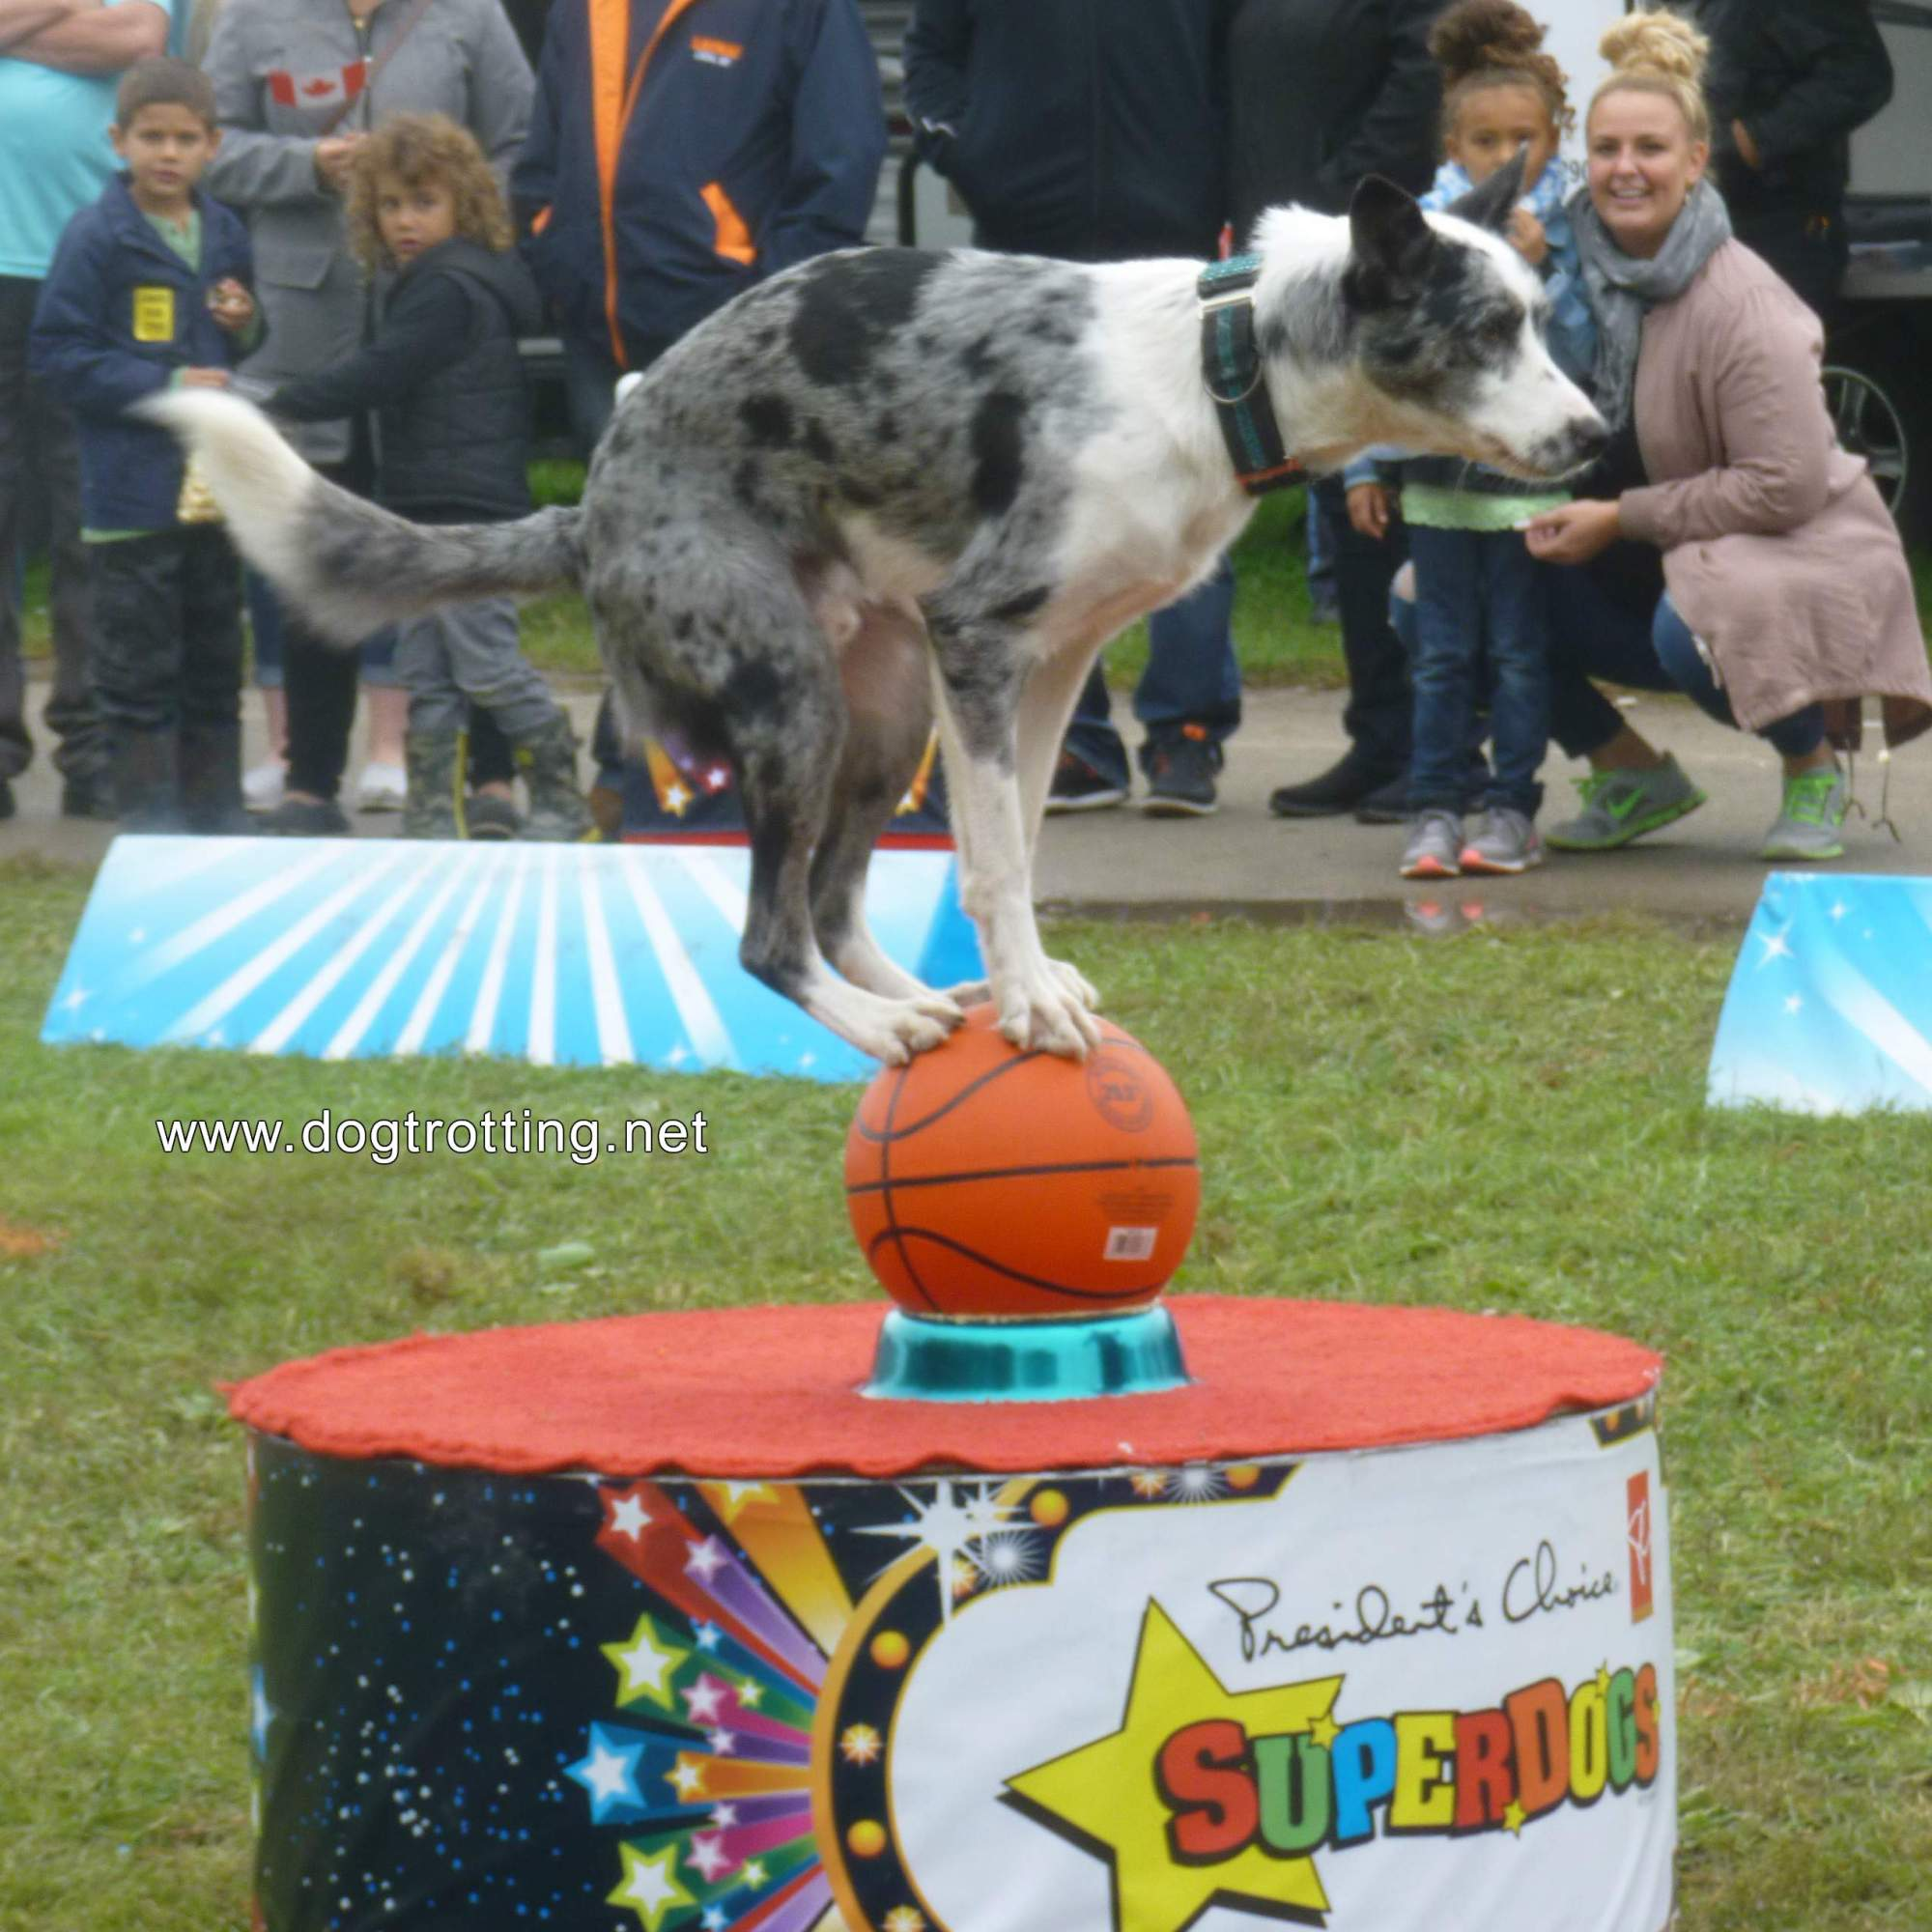 President's Choice SuperDogs dog balancing four paws on basket ball